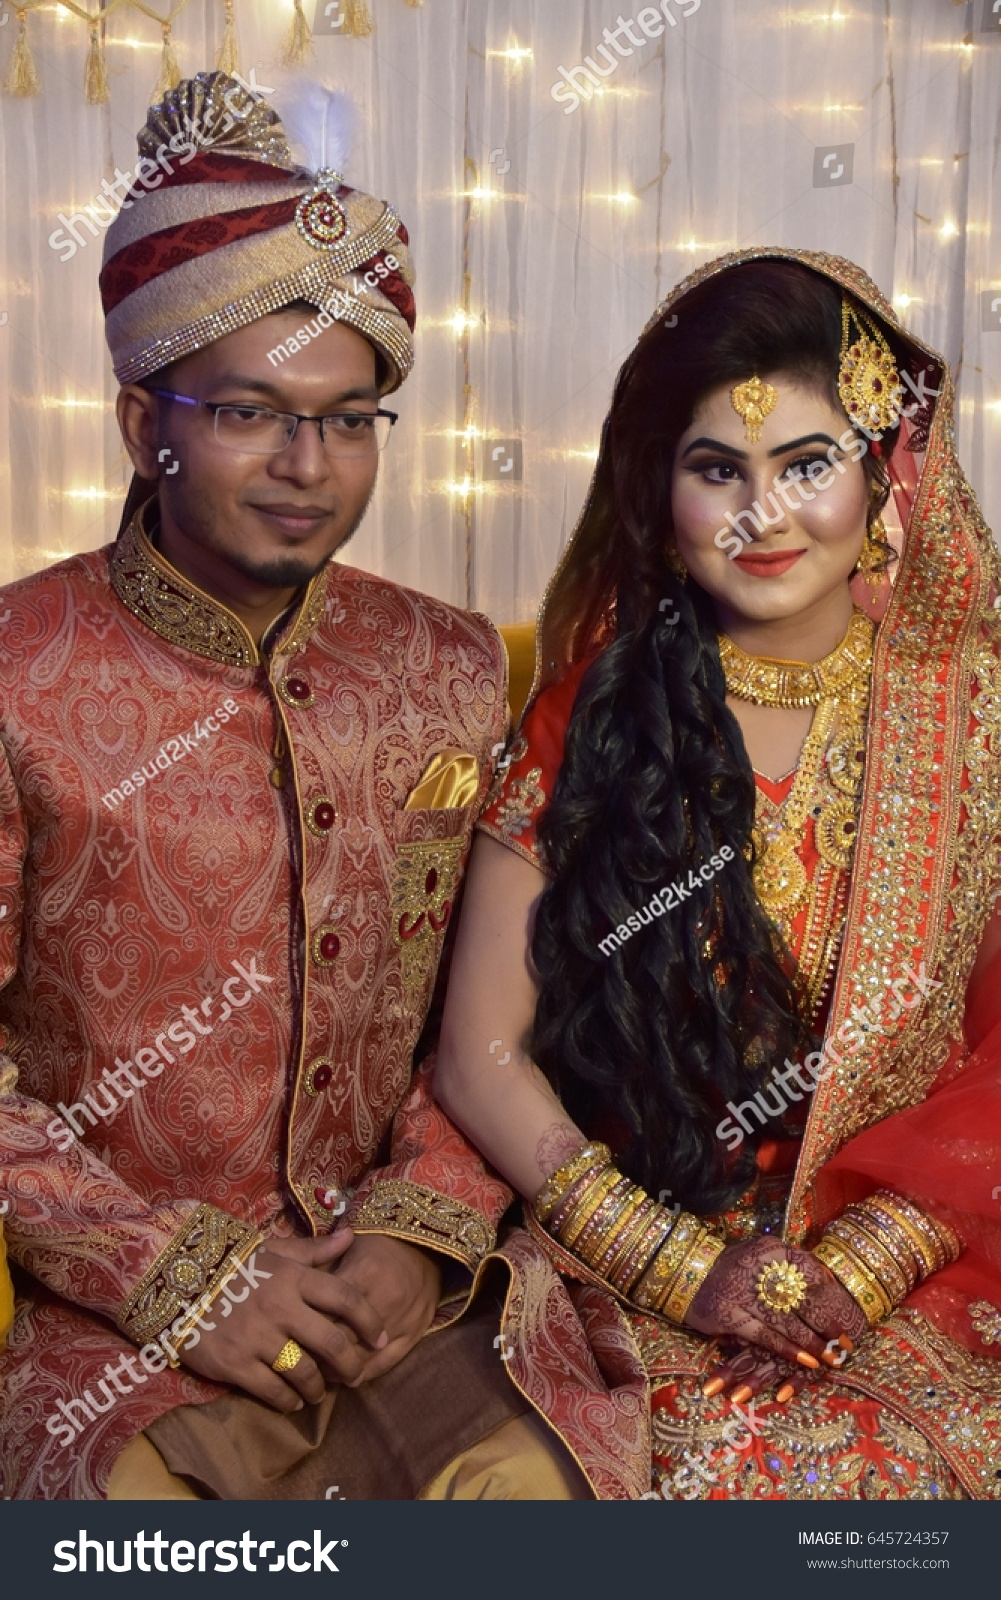 0200 pm 19th may 2017 khilgaon dhaka bangladesh a couple posing for a photo shoot during their weeding program image